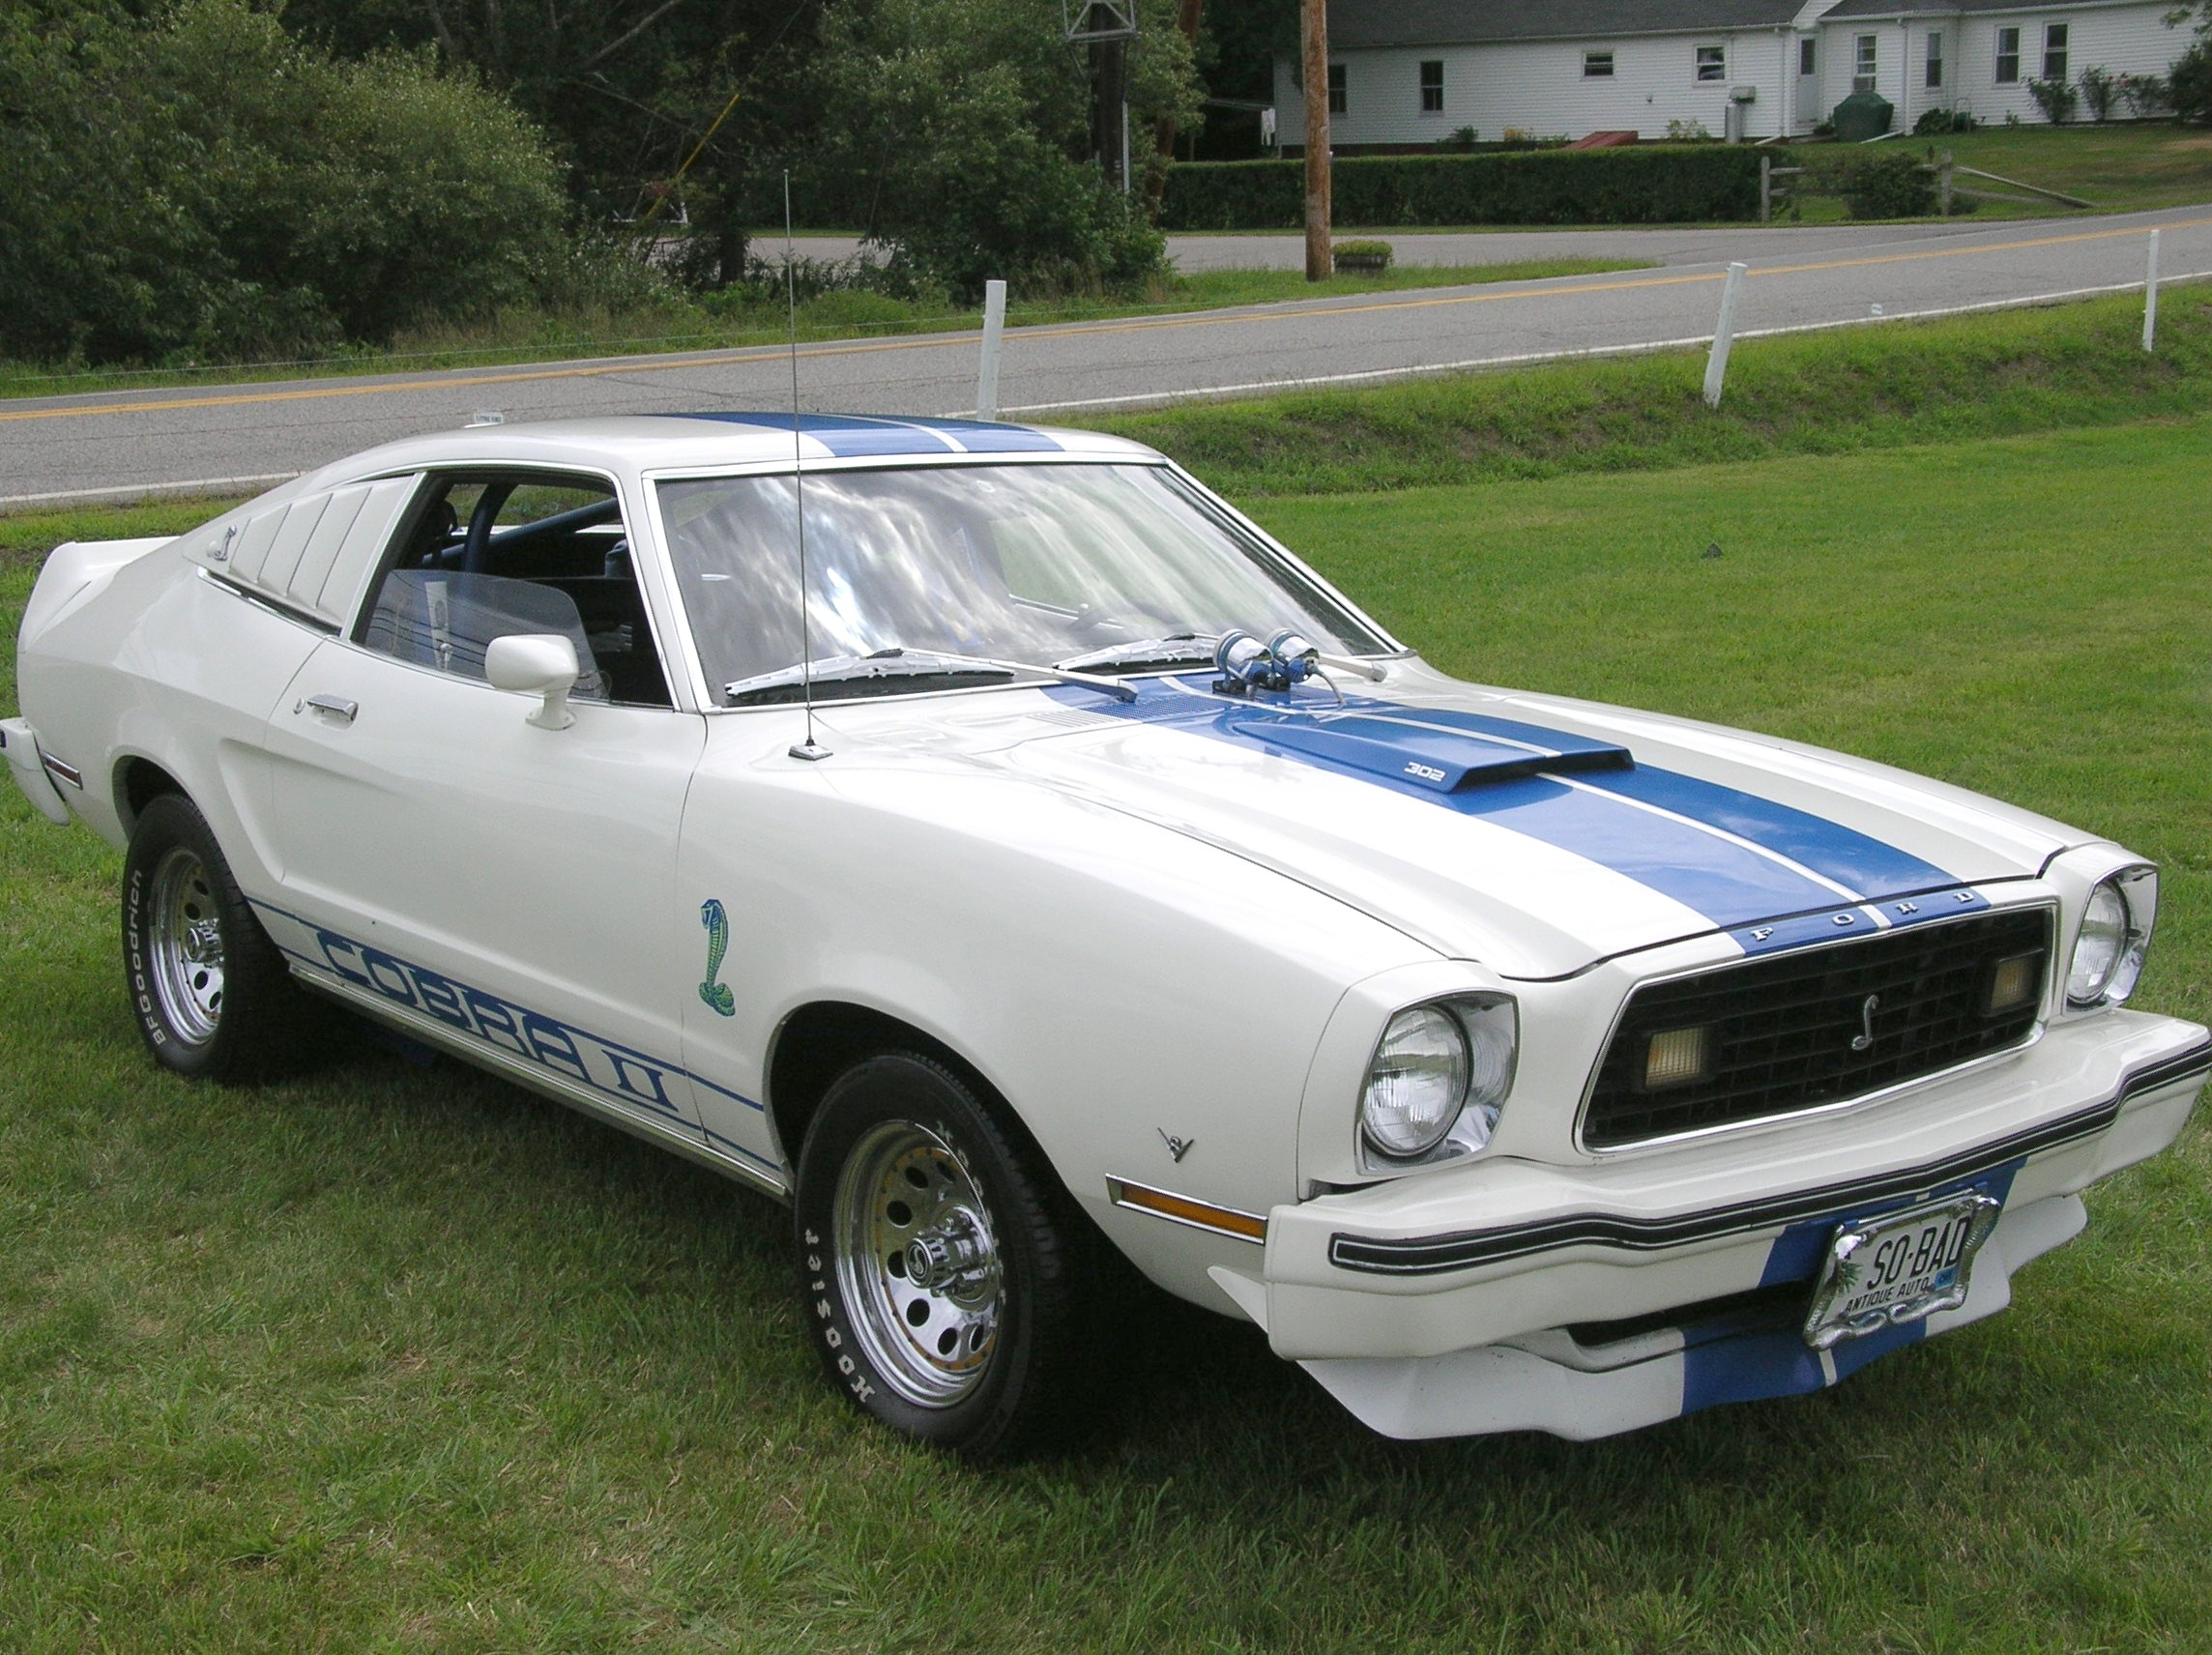 Ford mustang 1977 4 ford mustang 1977 4